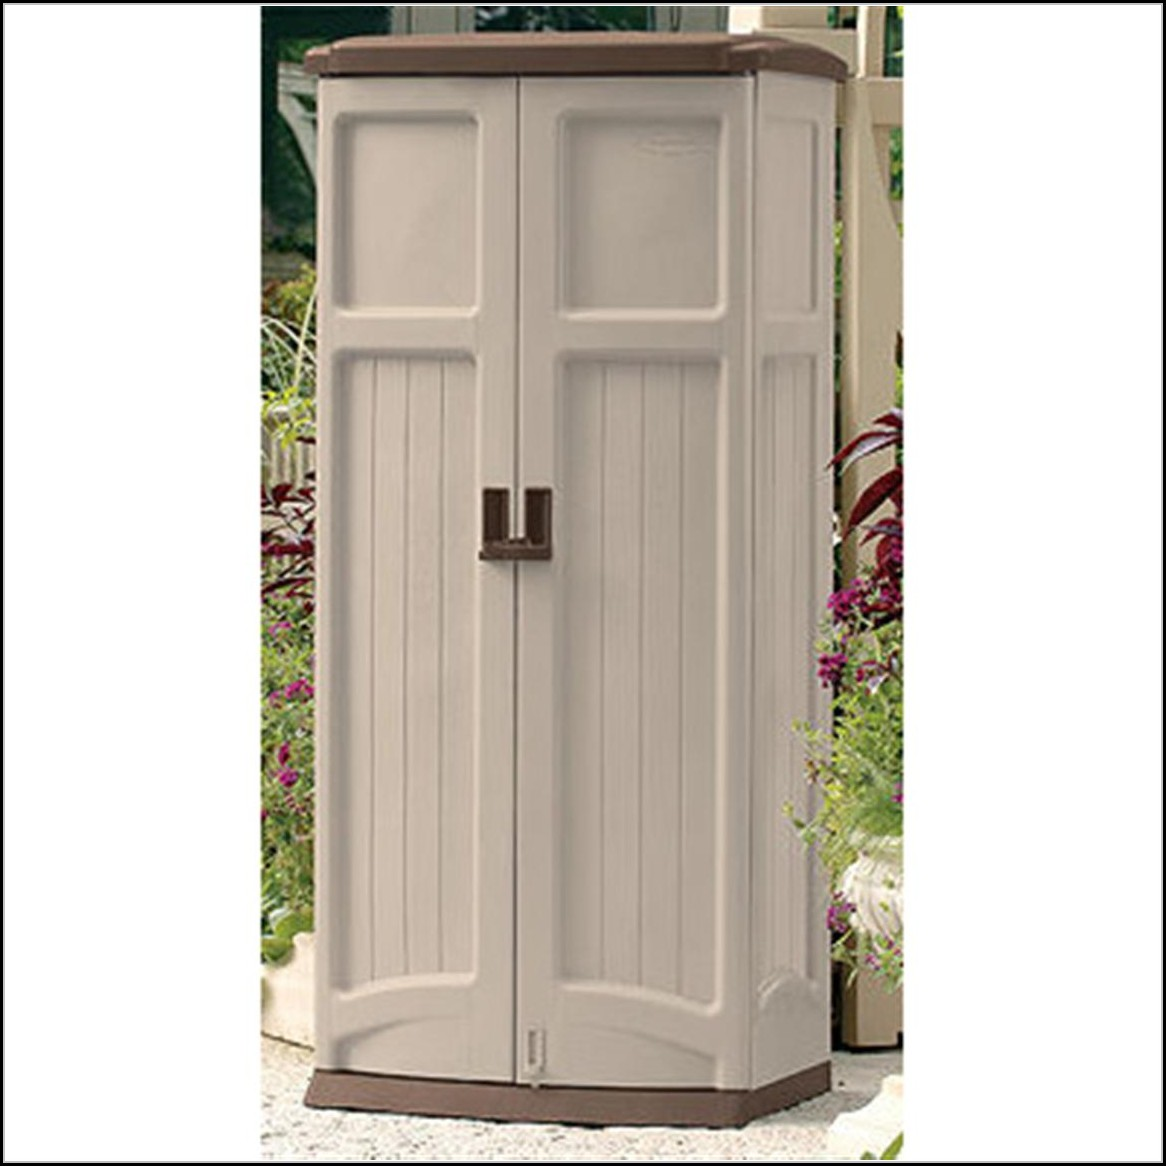 Suncast Patio Storage Shed Vertical